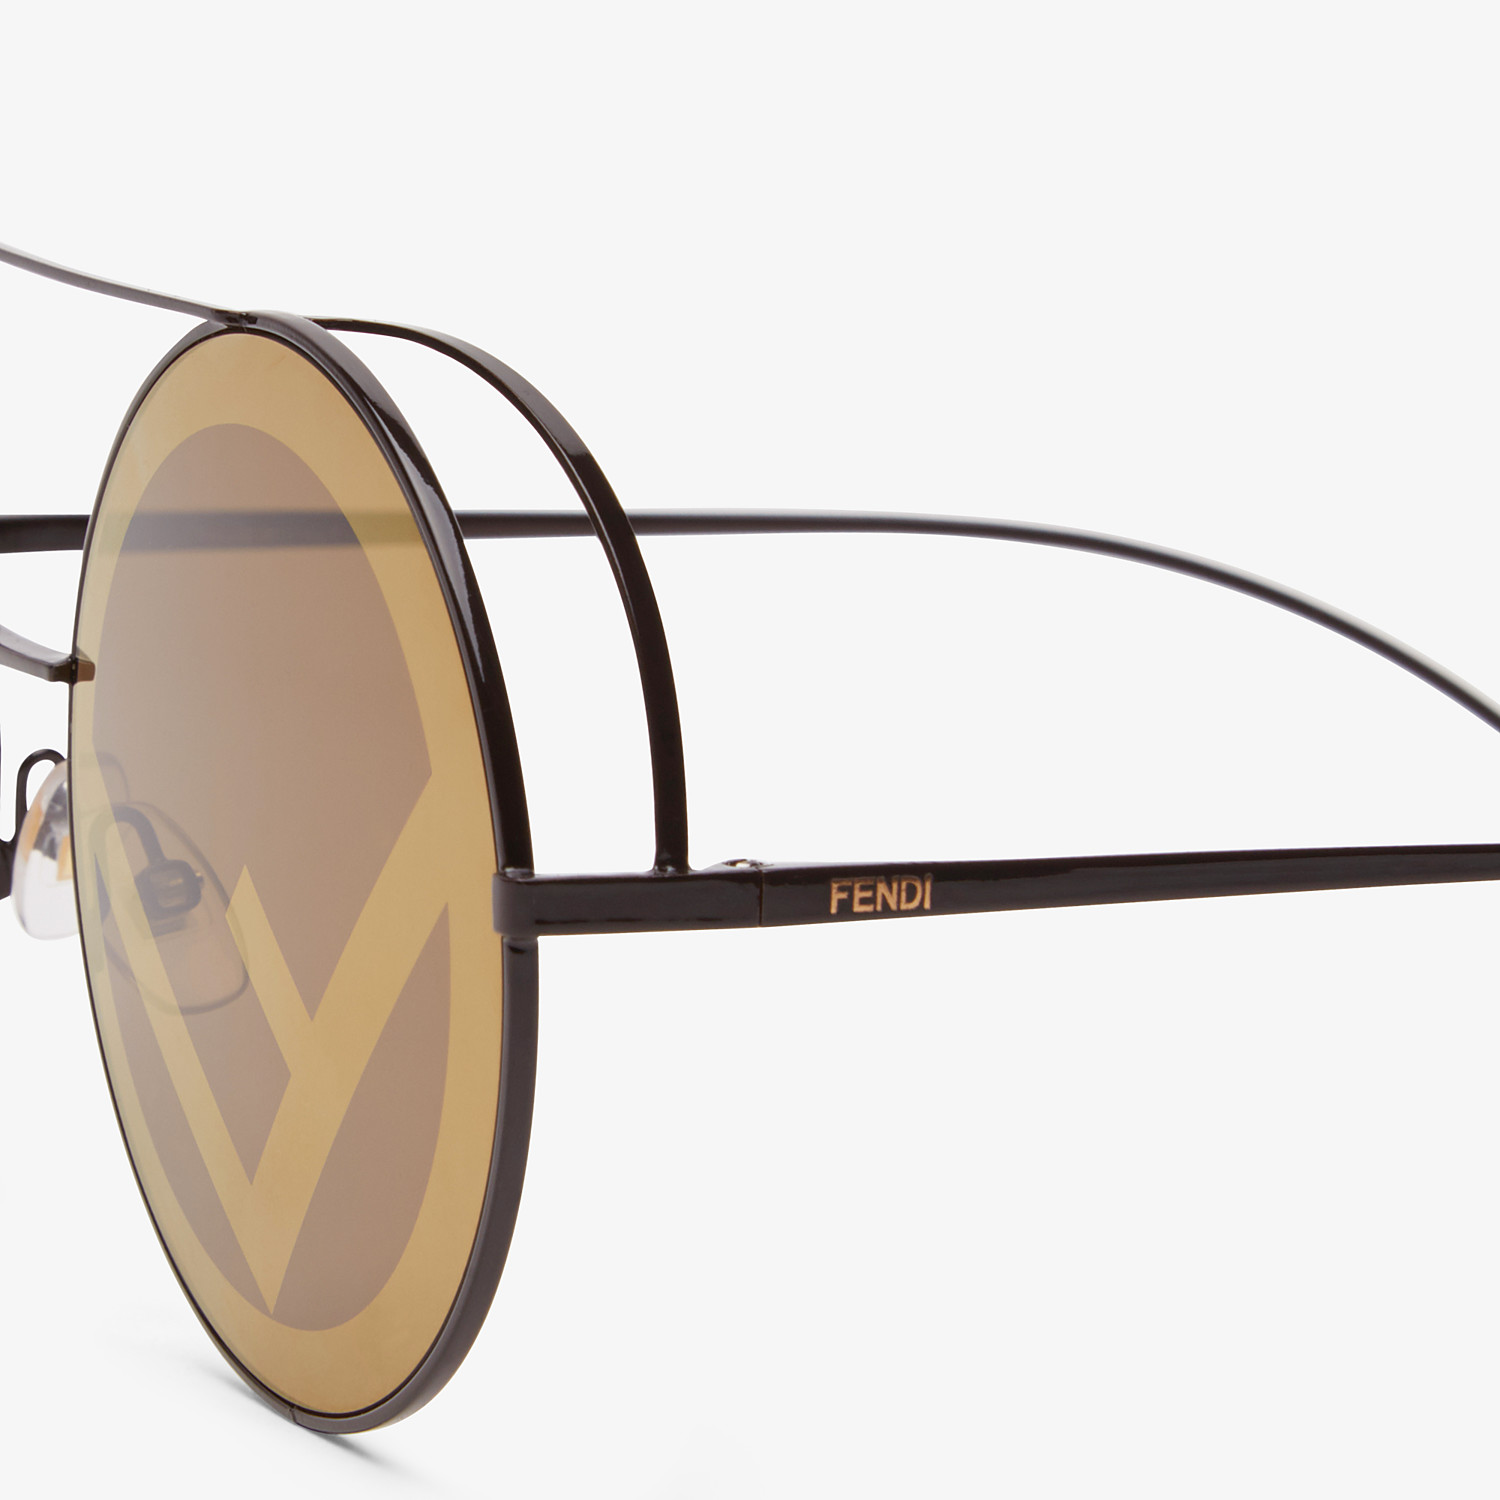 FENDI RUN AWAY - Brown sunglasses - view 3 detail